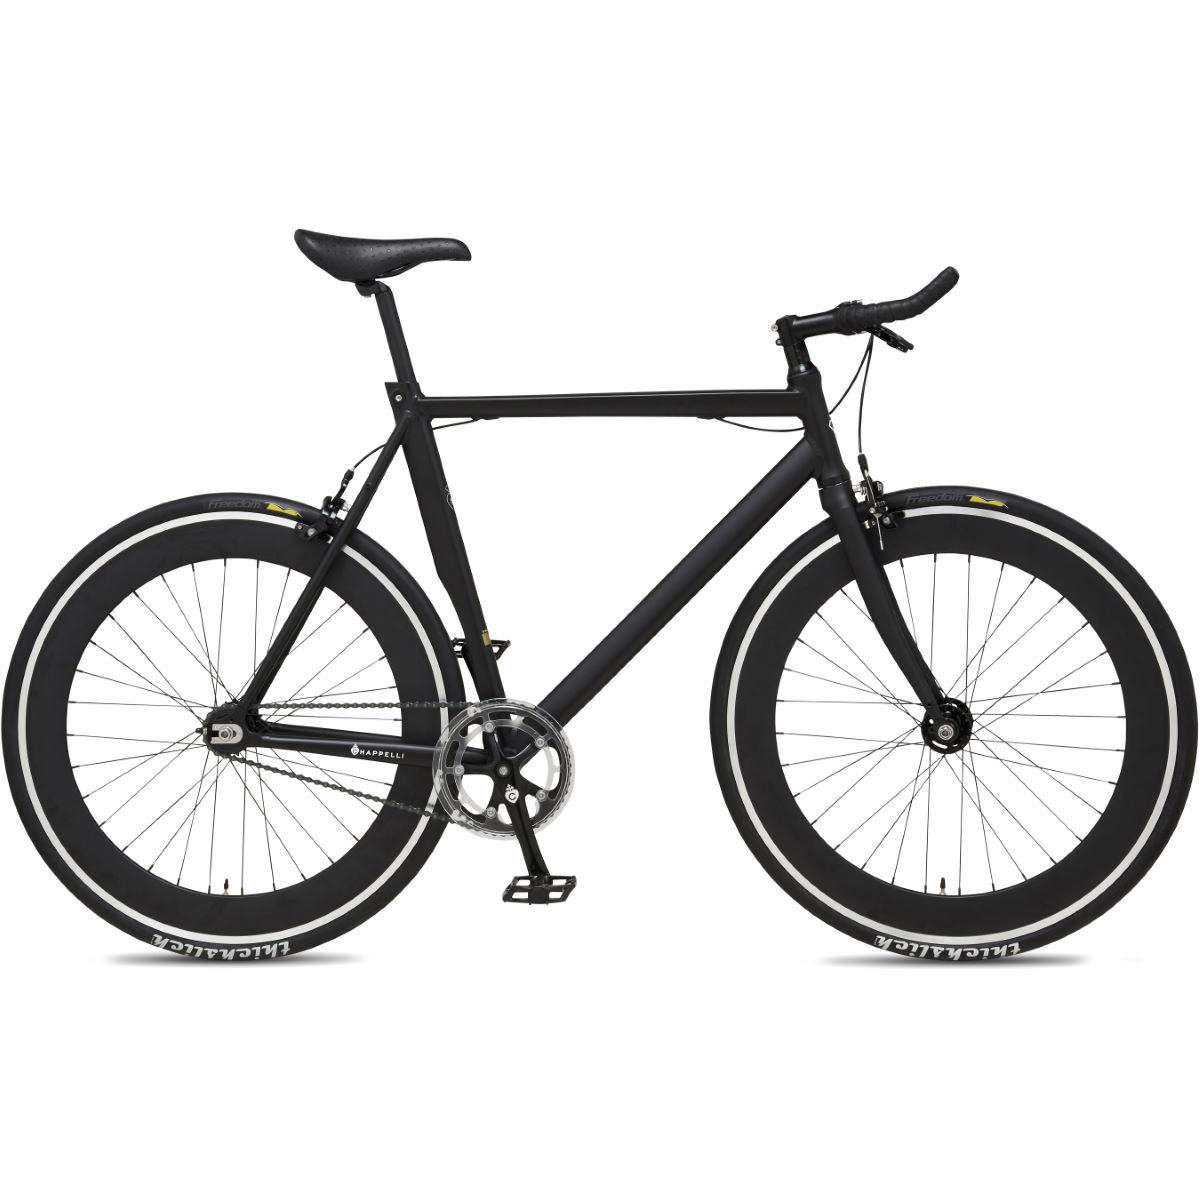 Chappelli El Toro Single Speed Bike (2017) - Bicicletas fixie